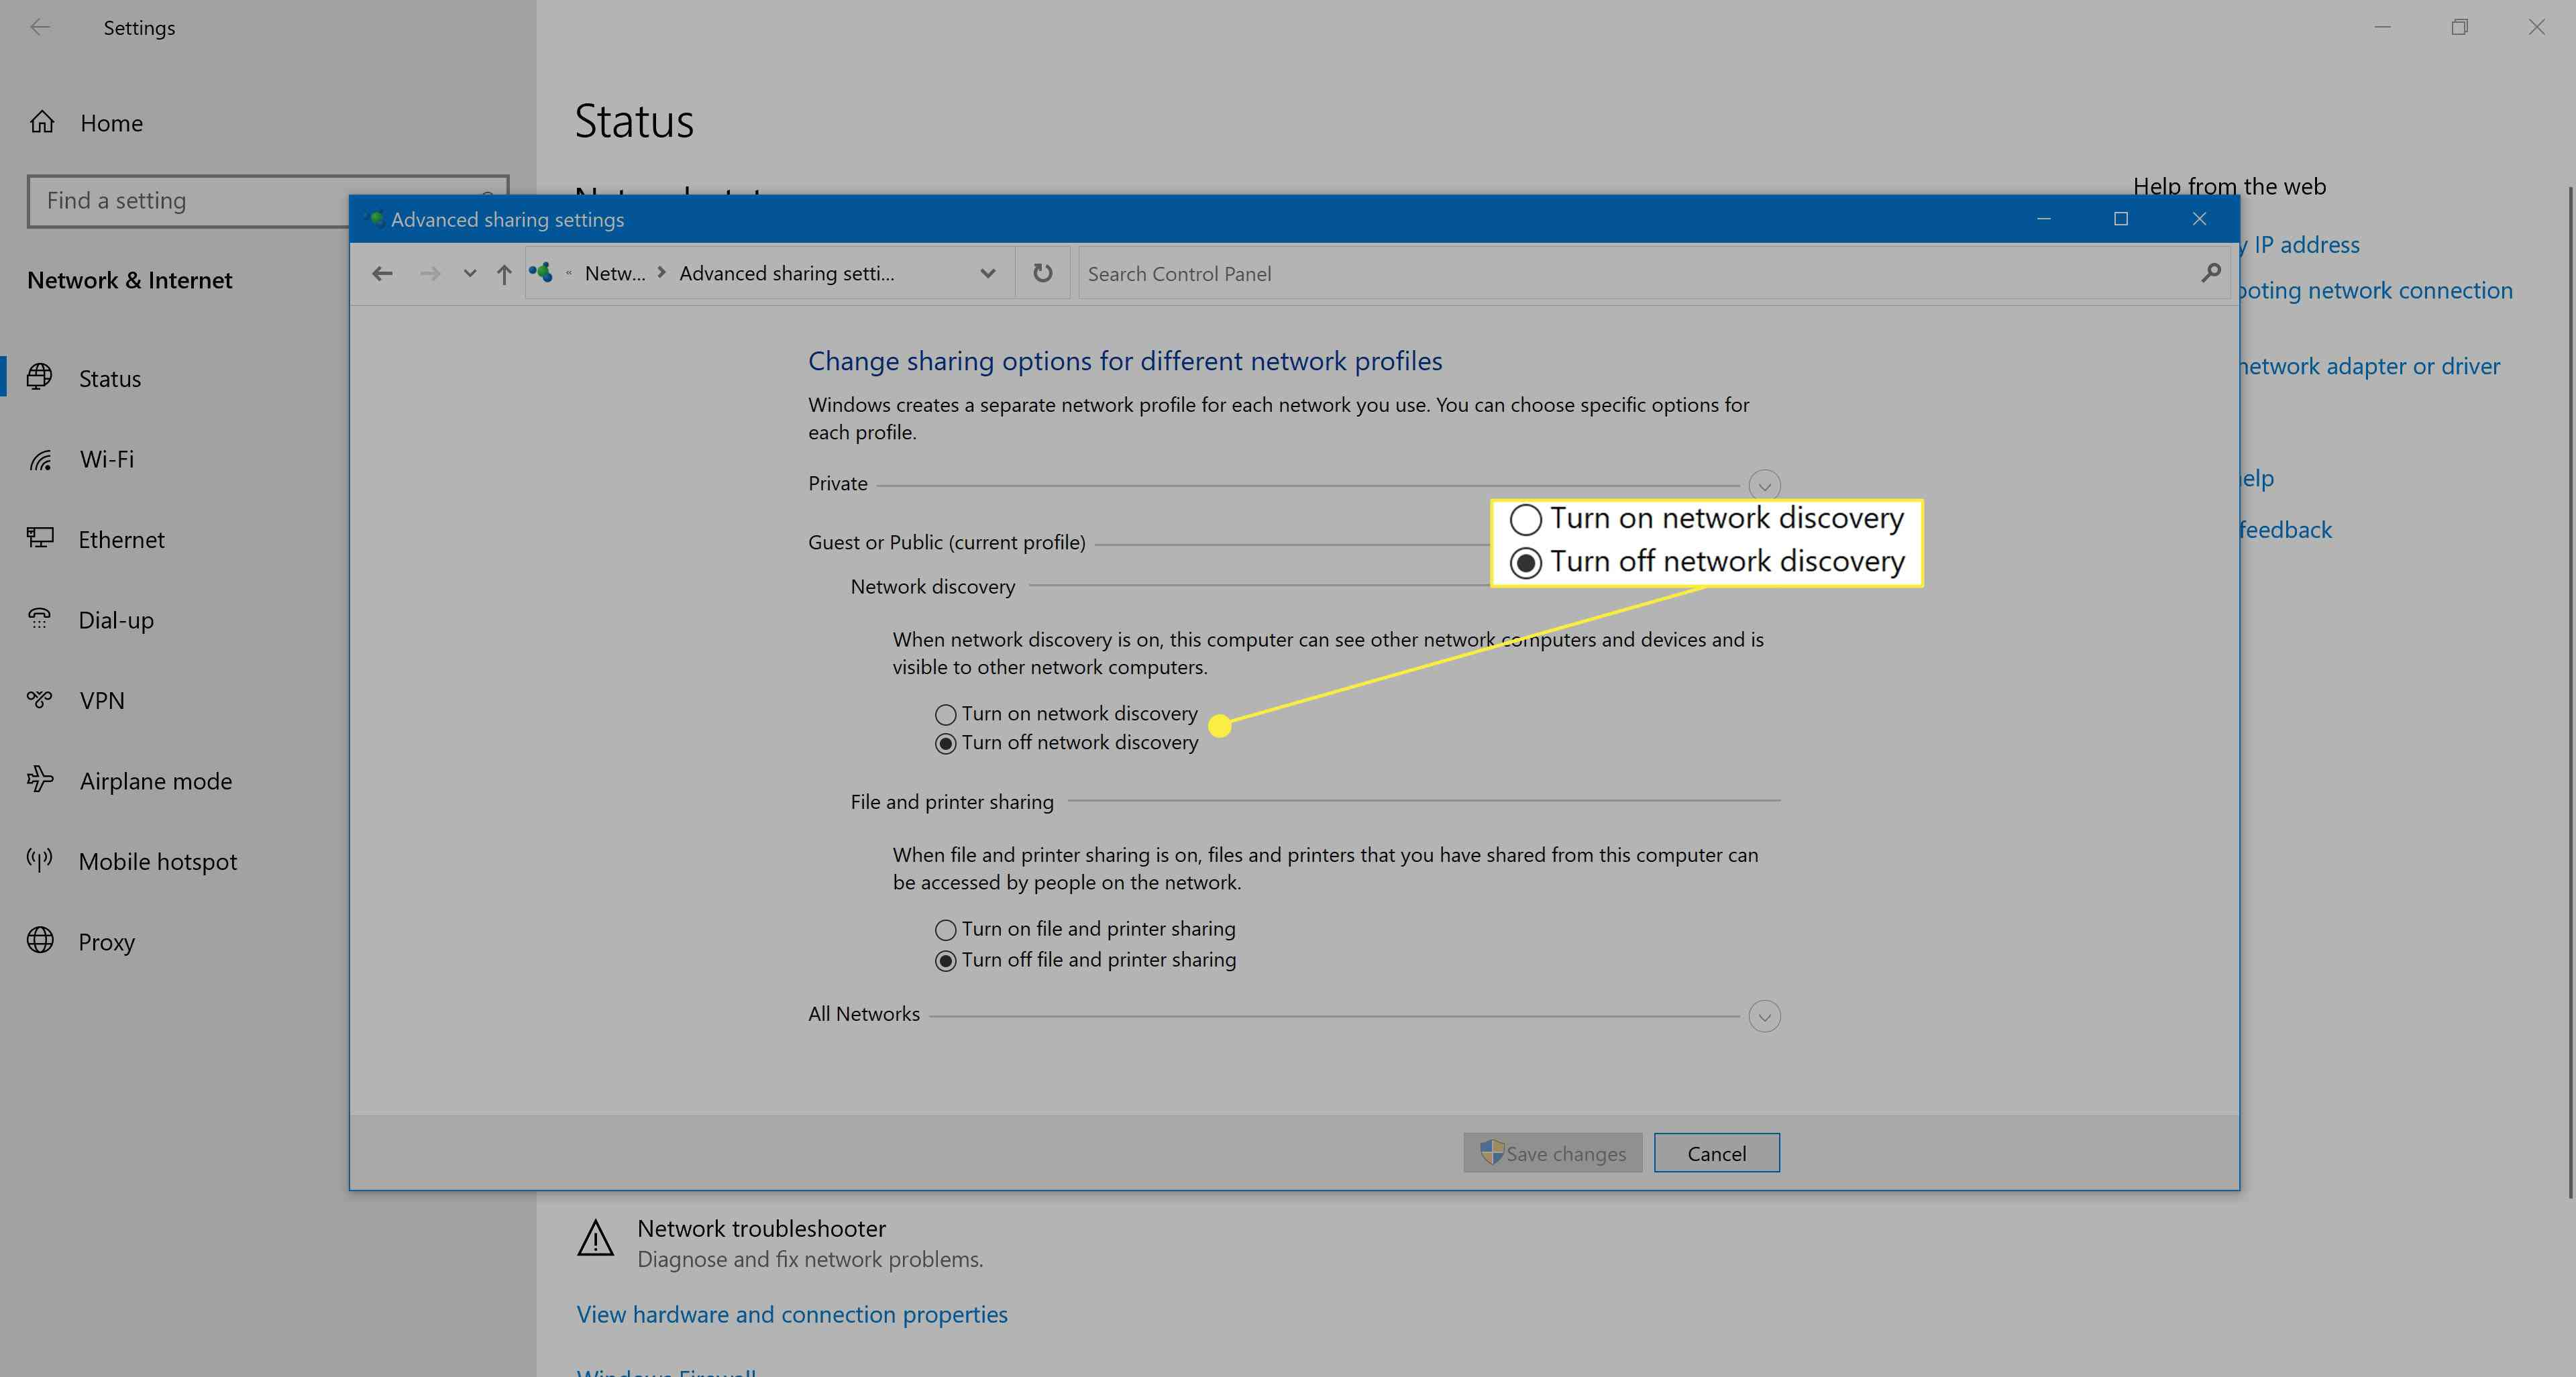 Windows 10 network discovery settings.